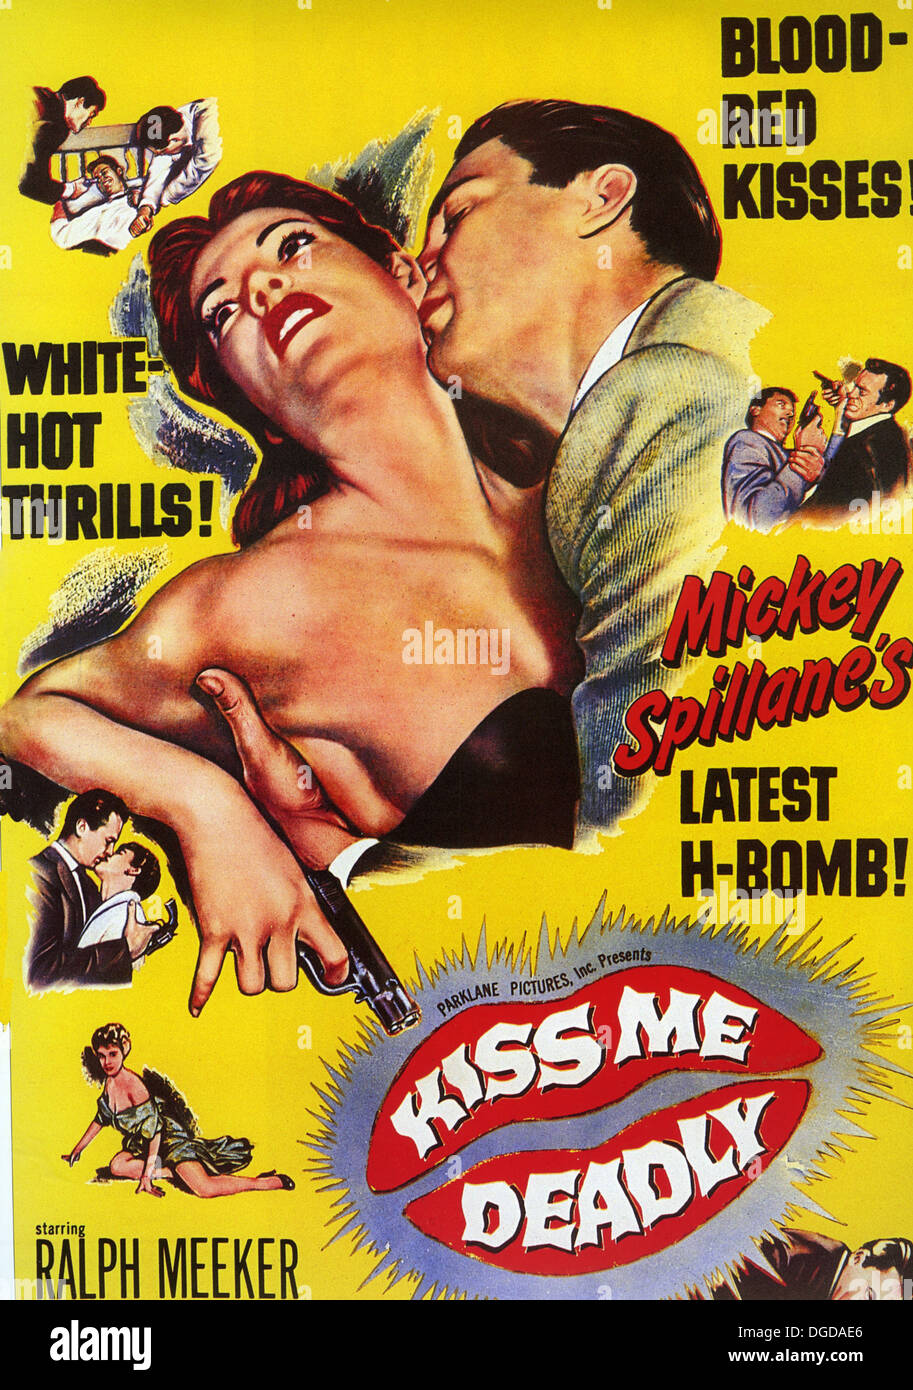 KISS ME DEADLY Poster for  1955 United Artists film noir from the novel by Mickey Spillane - Stock Image